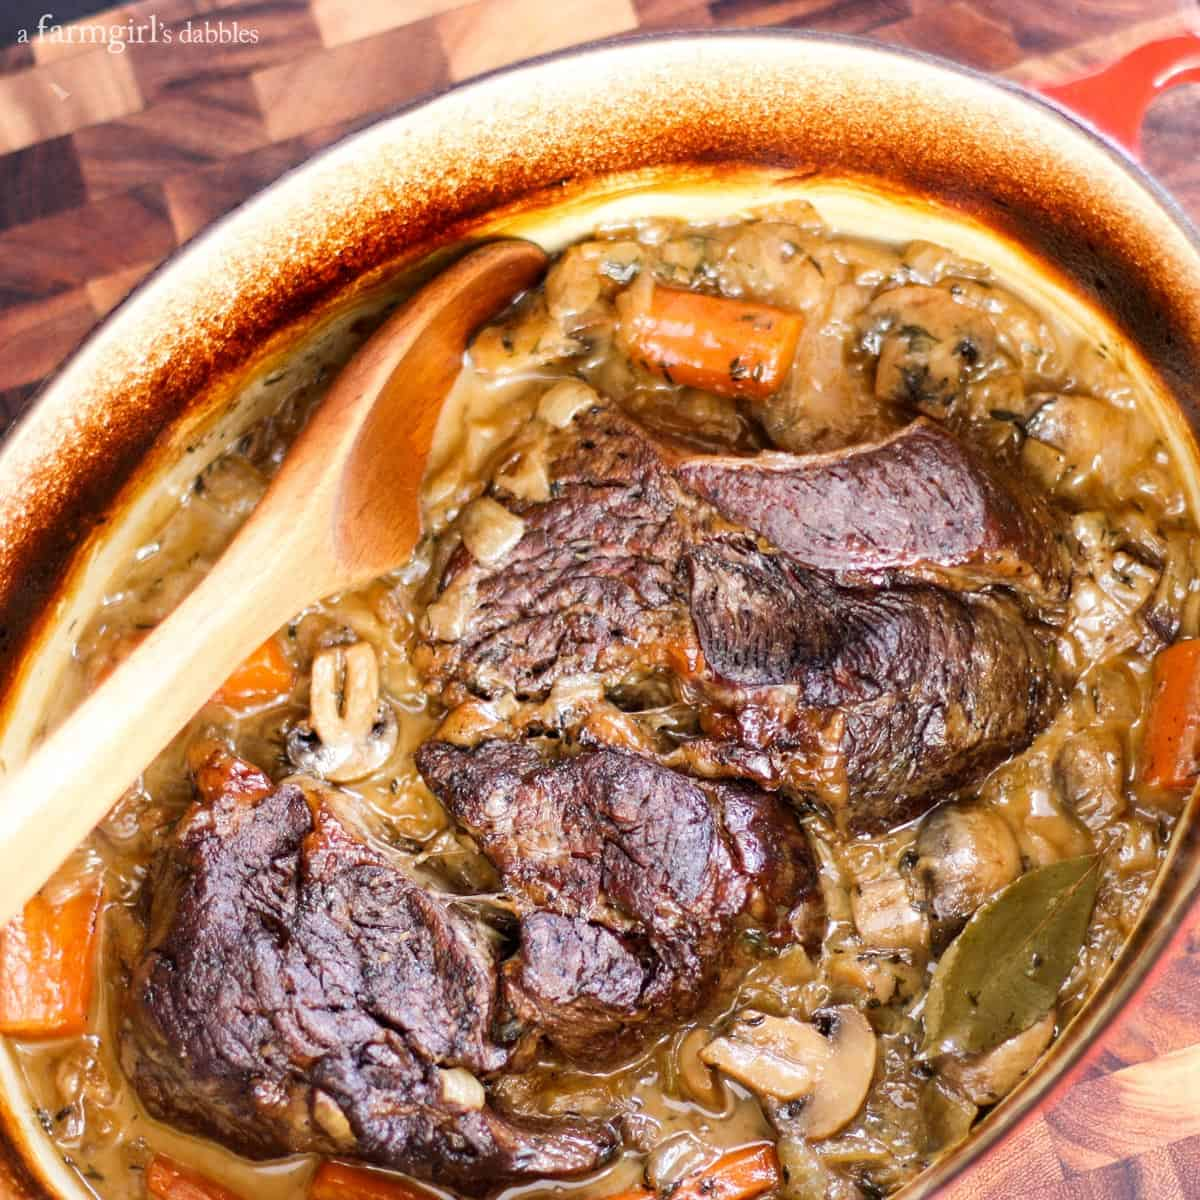 Hard Cider Pot Roast with Mushrooms, Carrots, and Onions from afarmgirlsdabbles.com